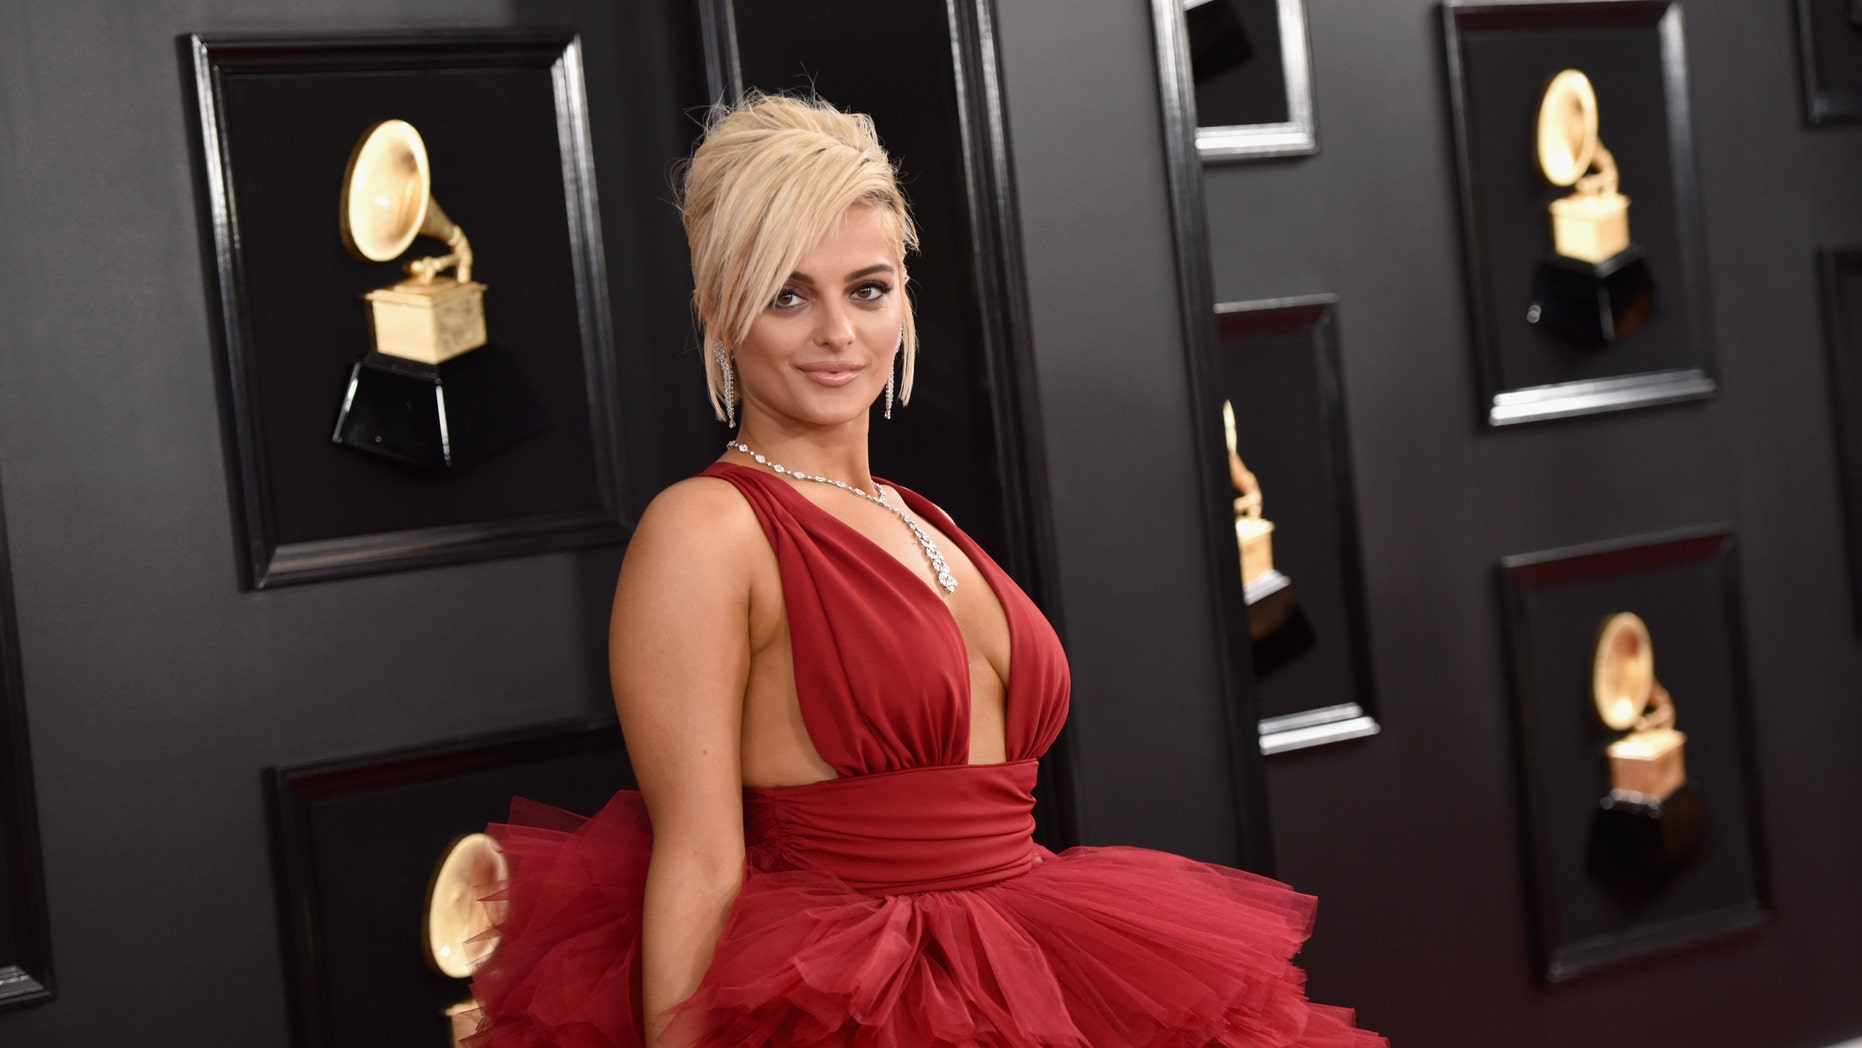 Bebe Rexha Addresses Size Discrimination at Grammys Following Viral Video